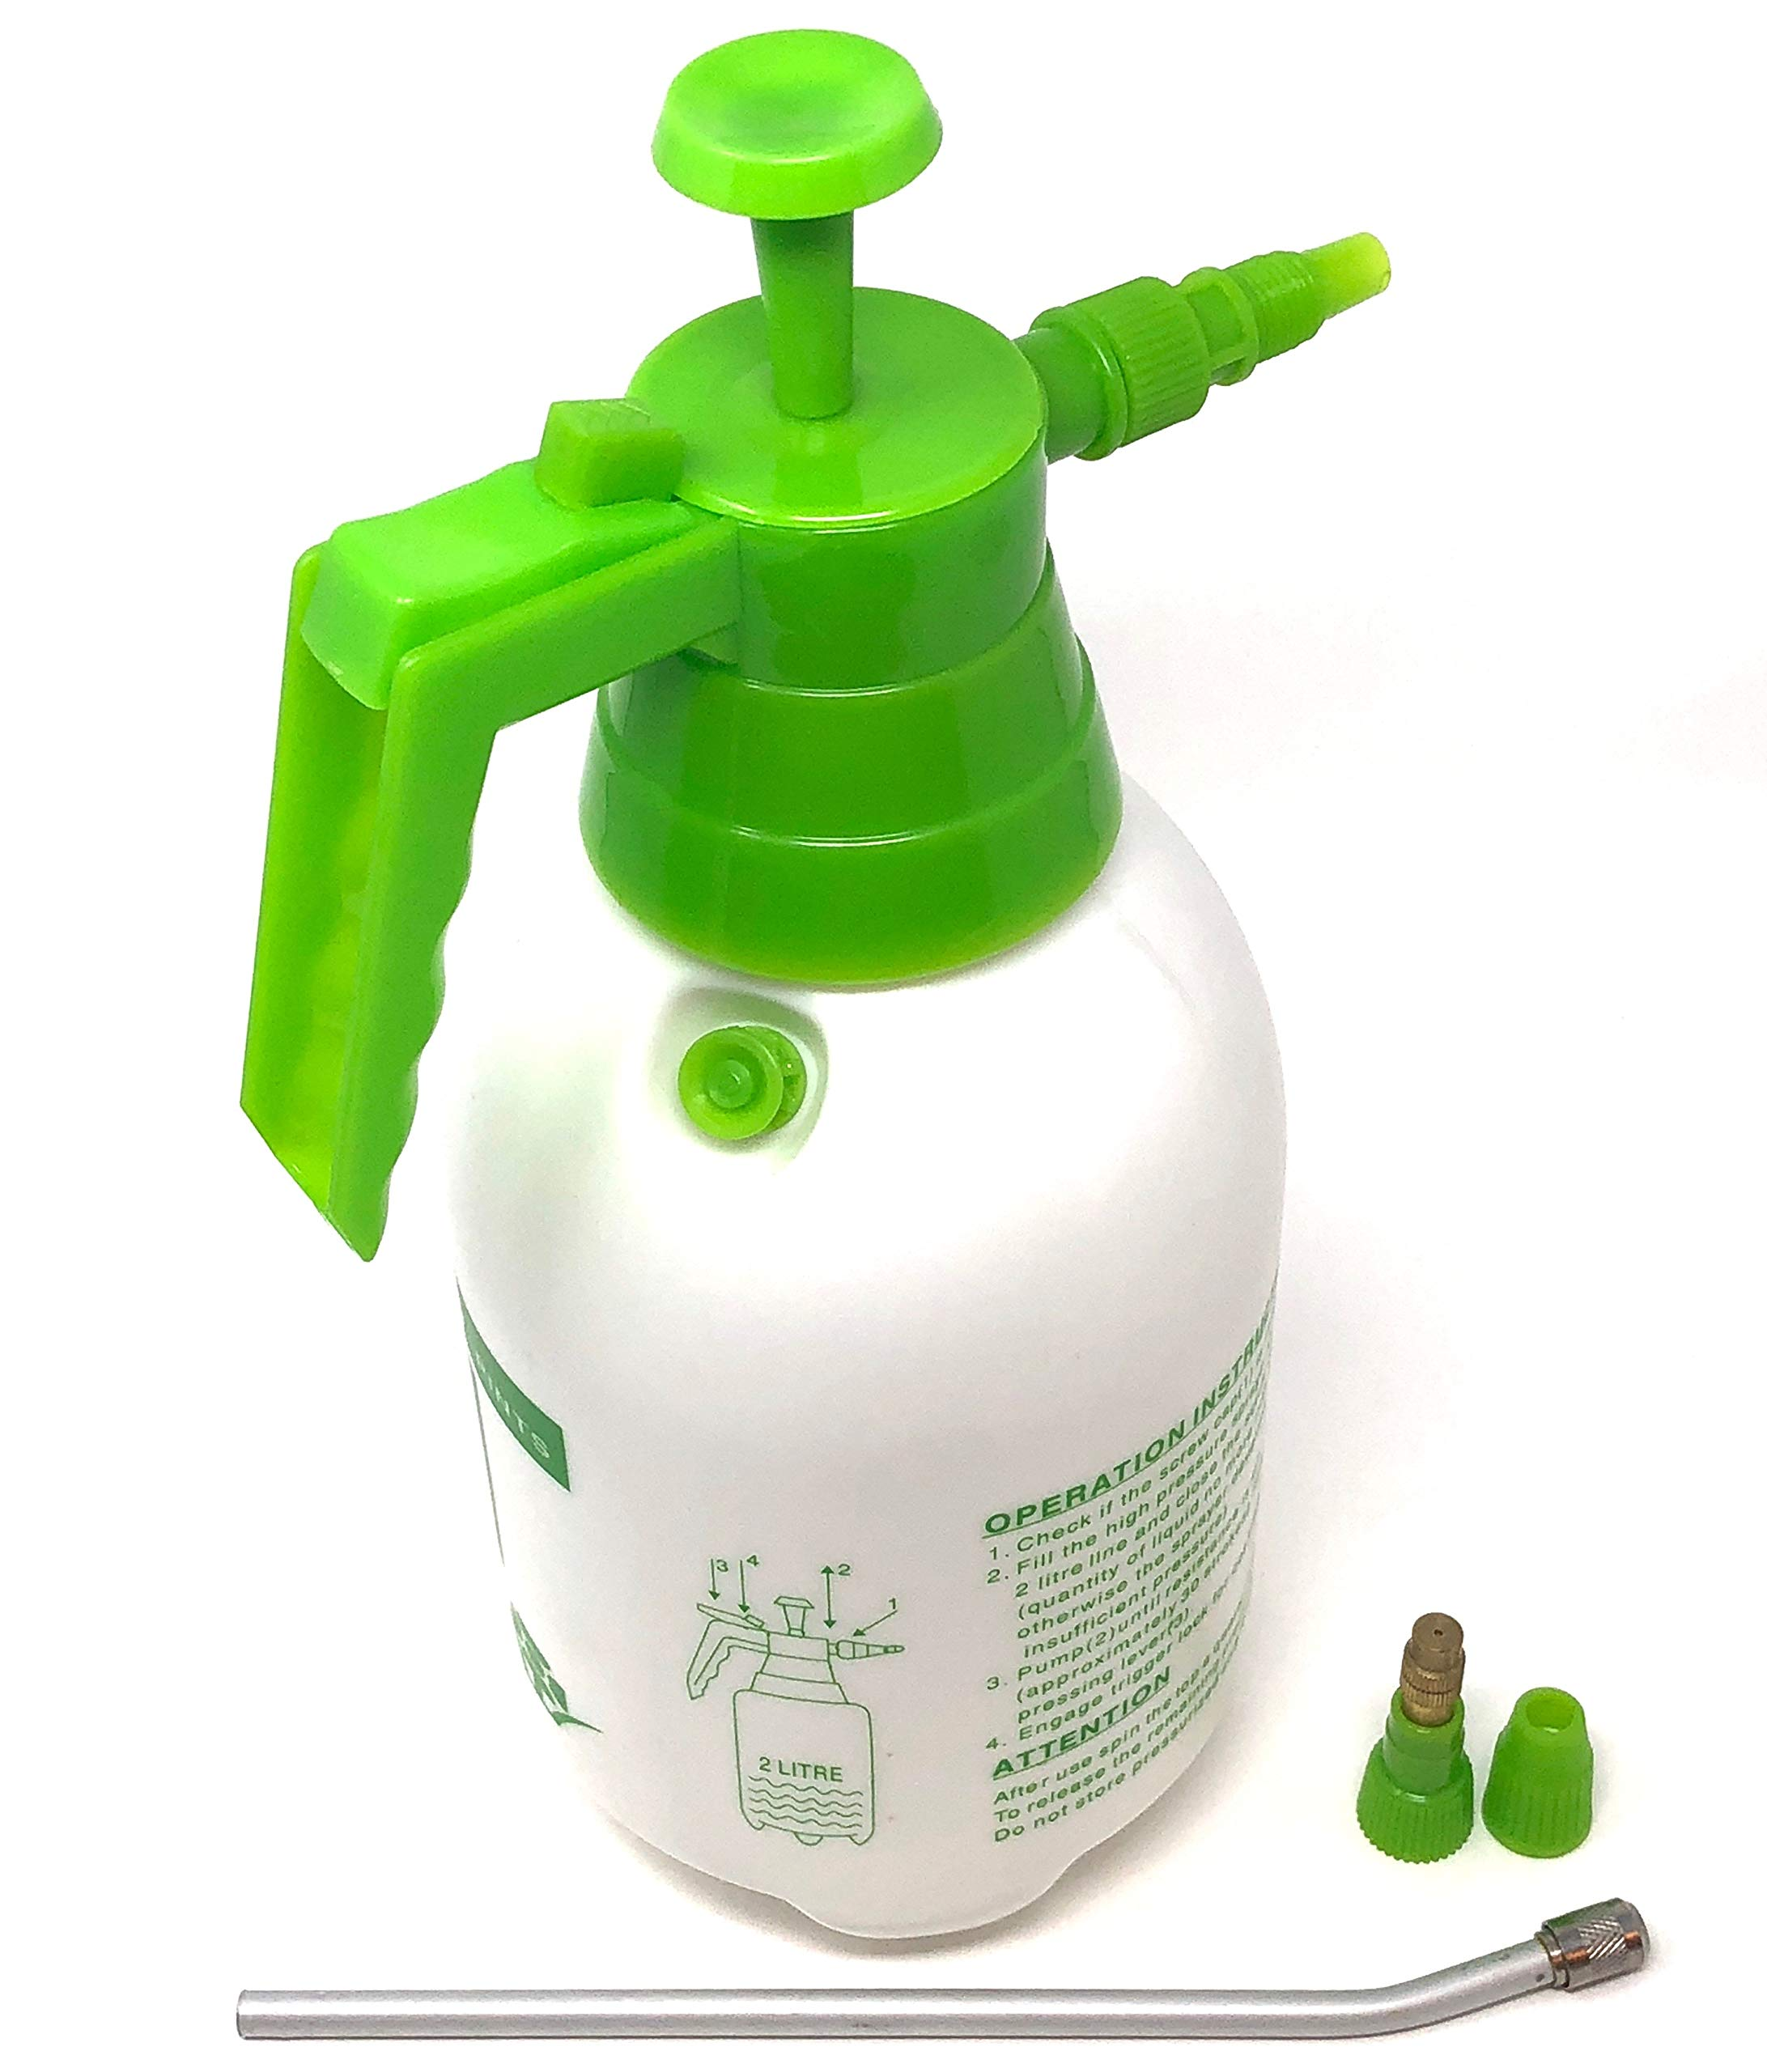 Könnig One-Hand Garden, Lawn and Yard Pressure Pesticide Water Sprayer for Chemicals, Fertilizer, with Bonus Nozzle 0.5 Gallons (White-Green)